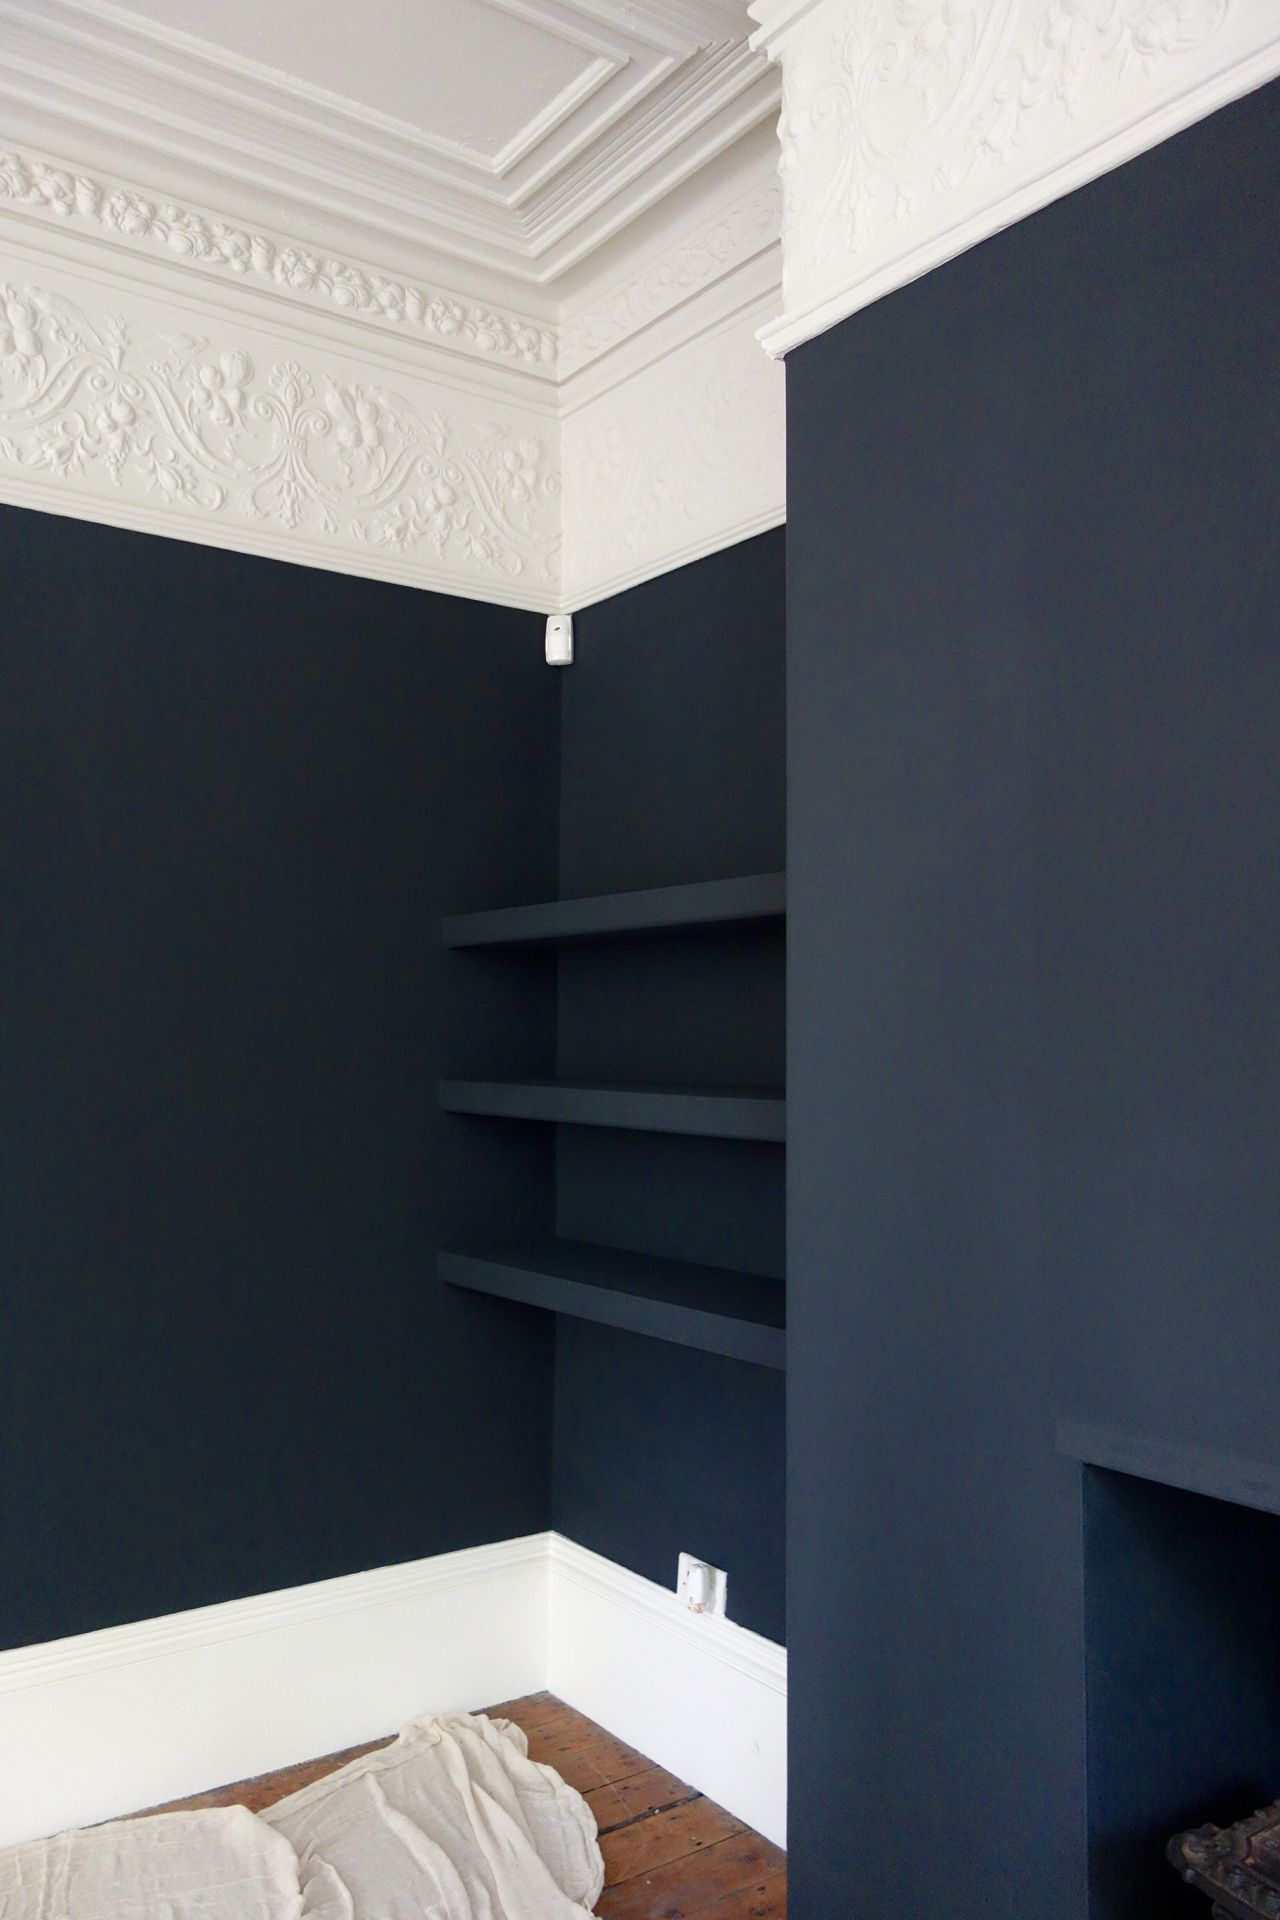 Farrow And Ball Décoration Farrow Ball Off Black And Shadow White At The Victorian Villa